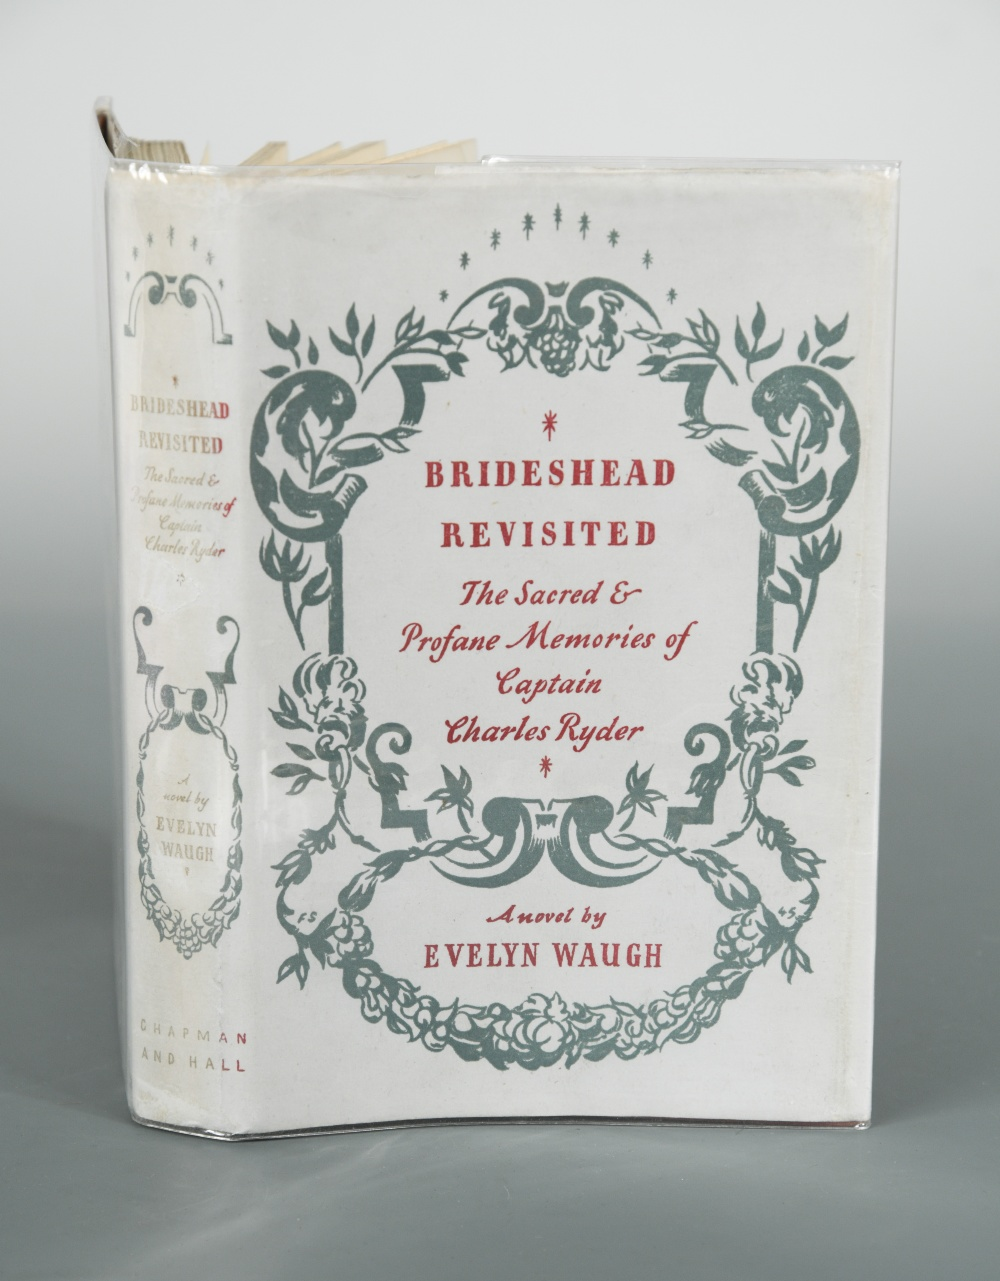 WAUGH (Evelyn) Brideshead Revisited, first edition London 1945, 8vo, in intact dust jacket, light